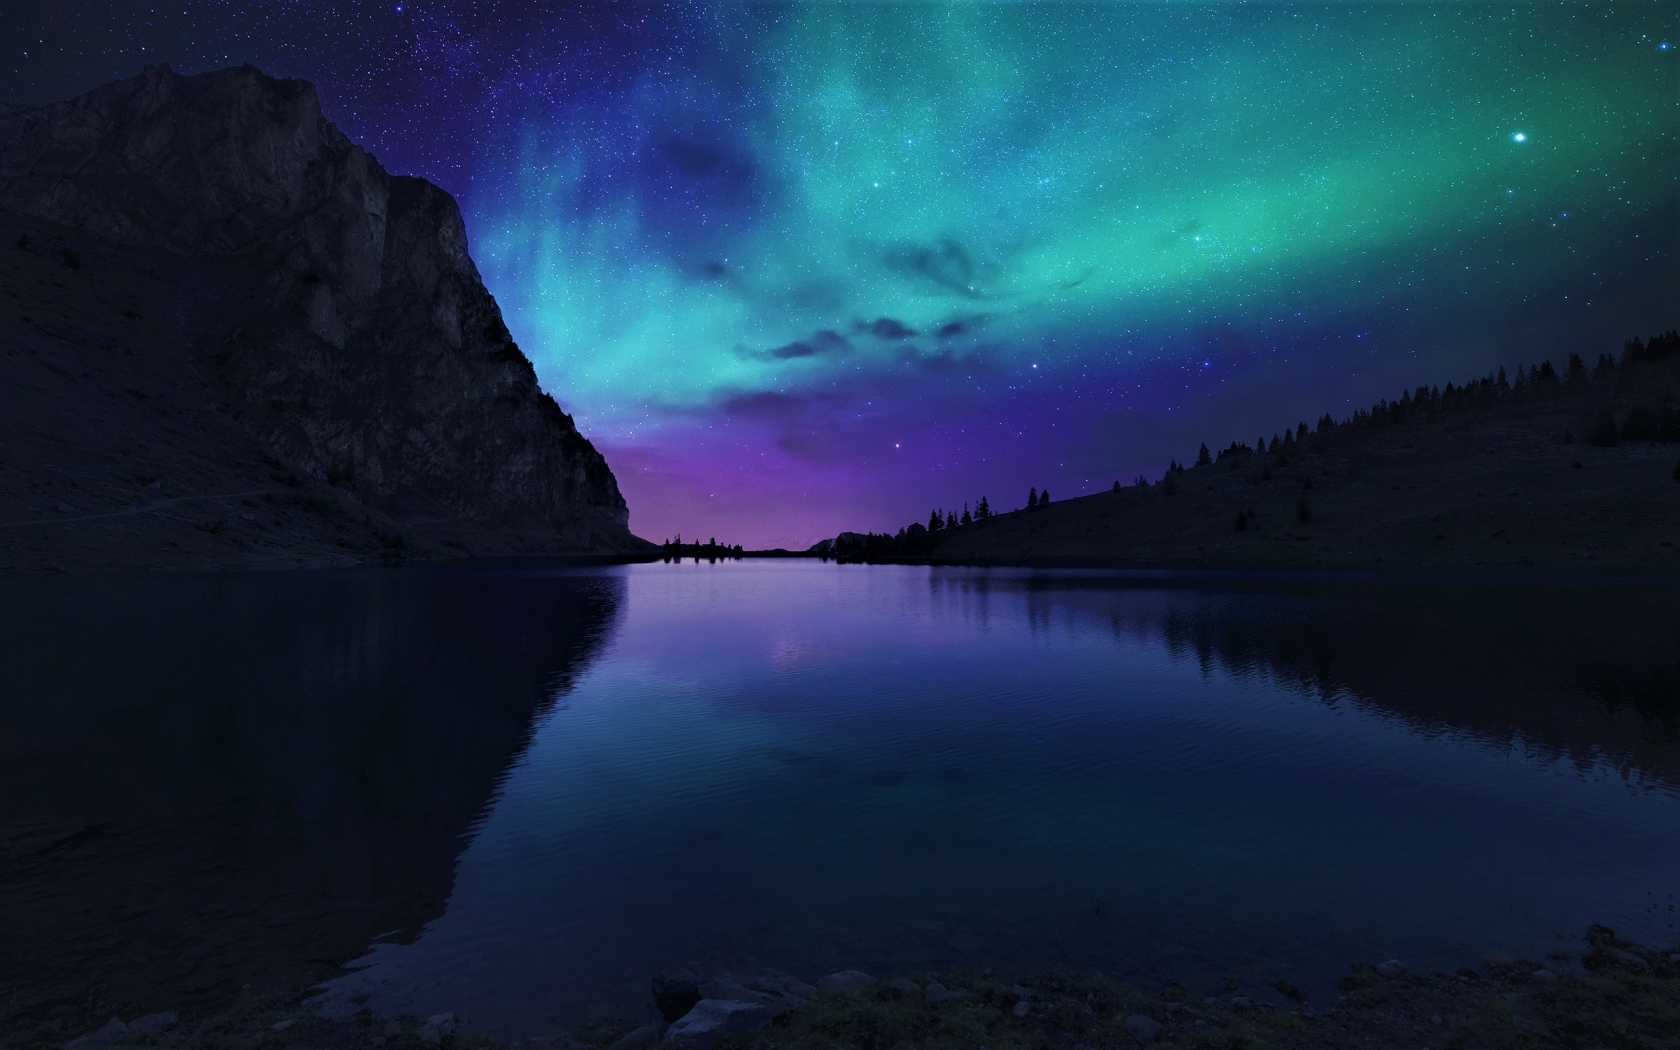 Aurora Borealis Northern Lights Over Mountain Lake  Full